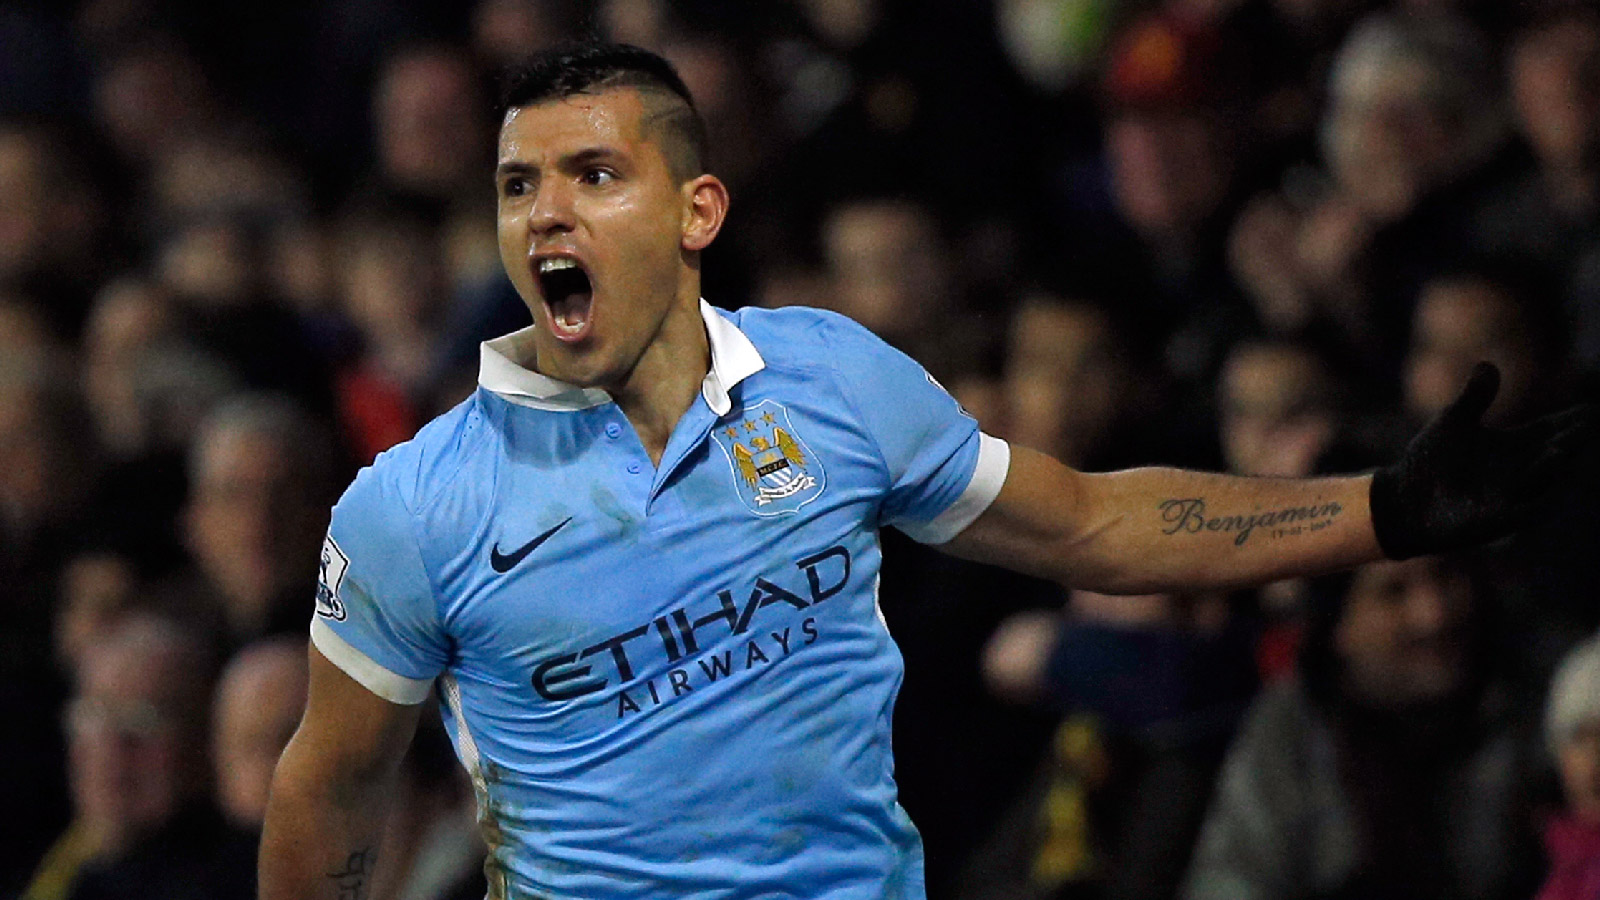 Aguero set to sign new mega-money deal with Man City